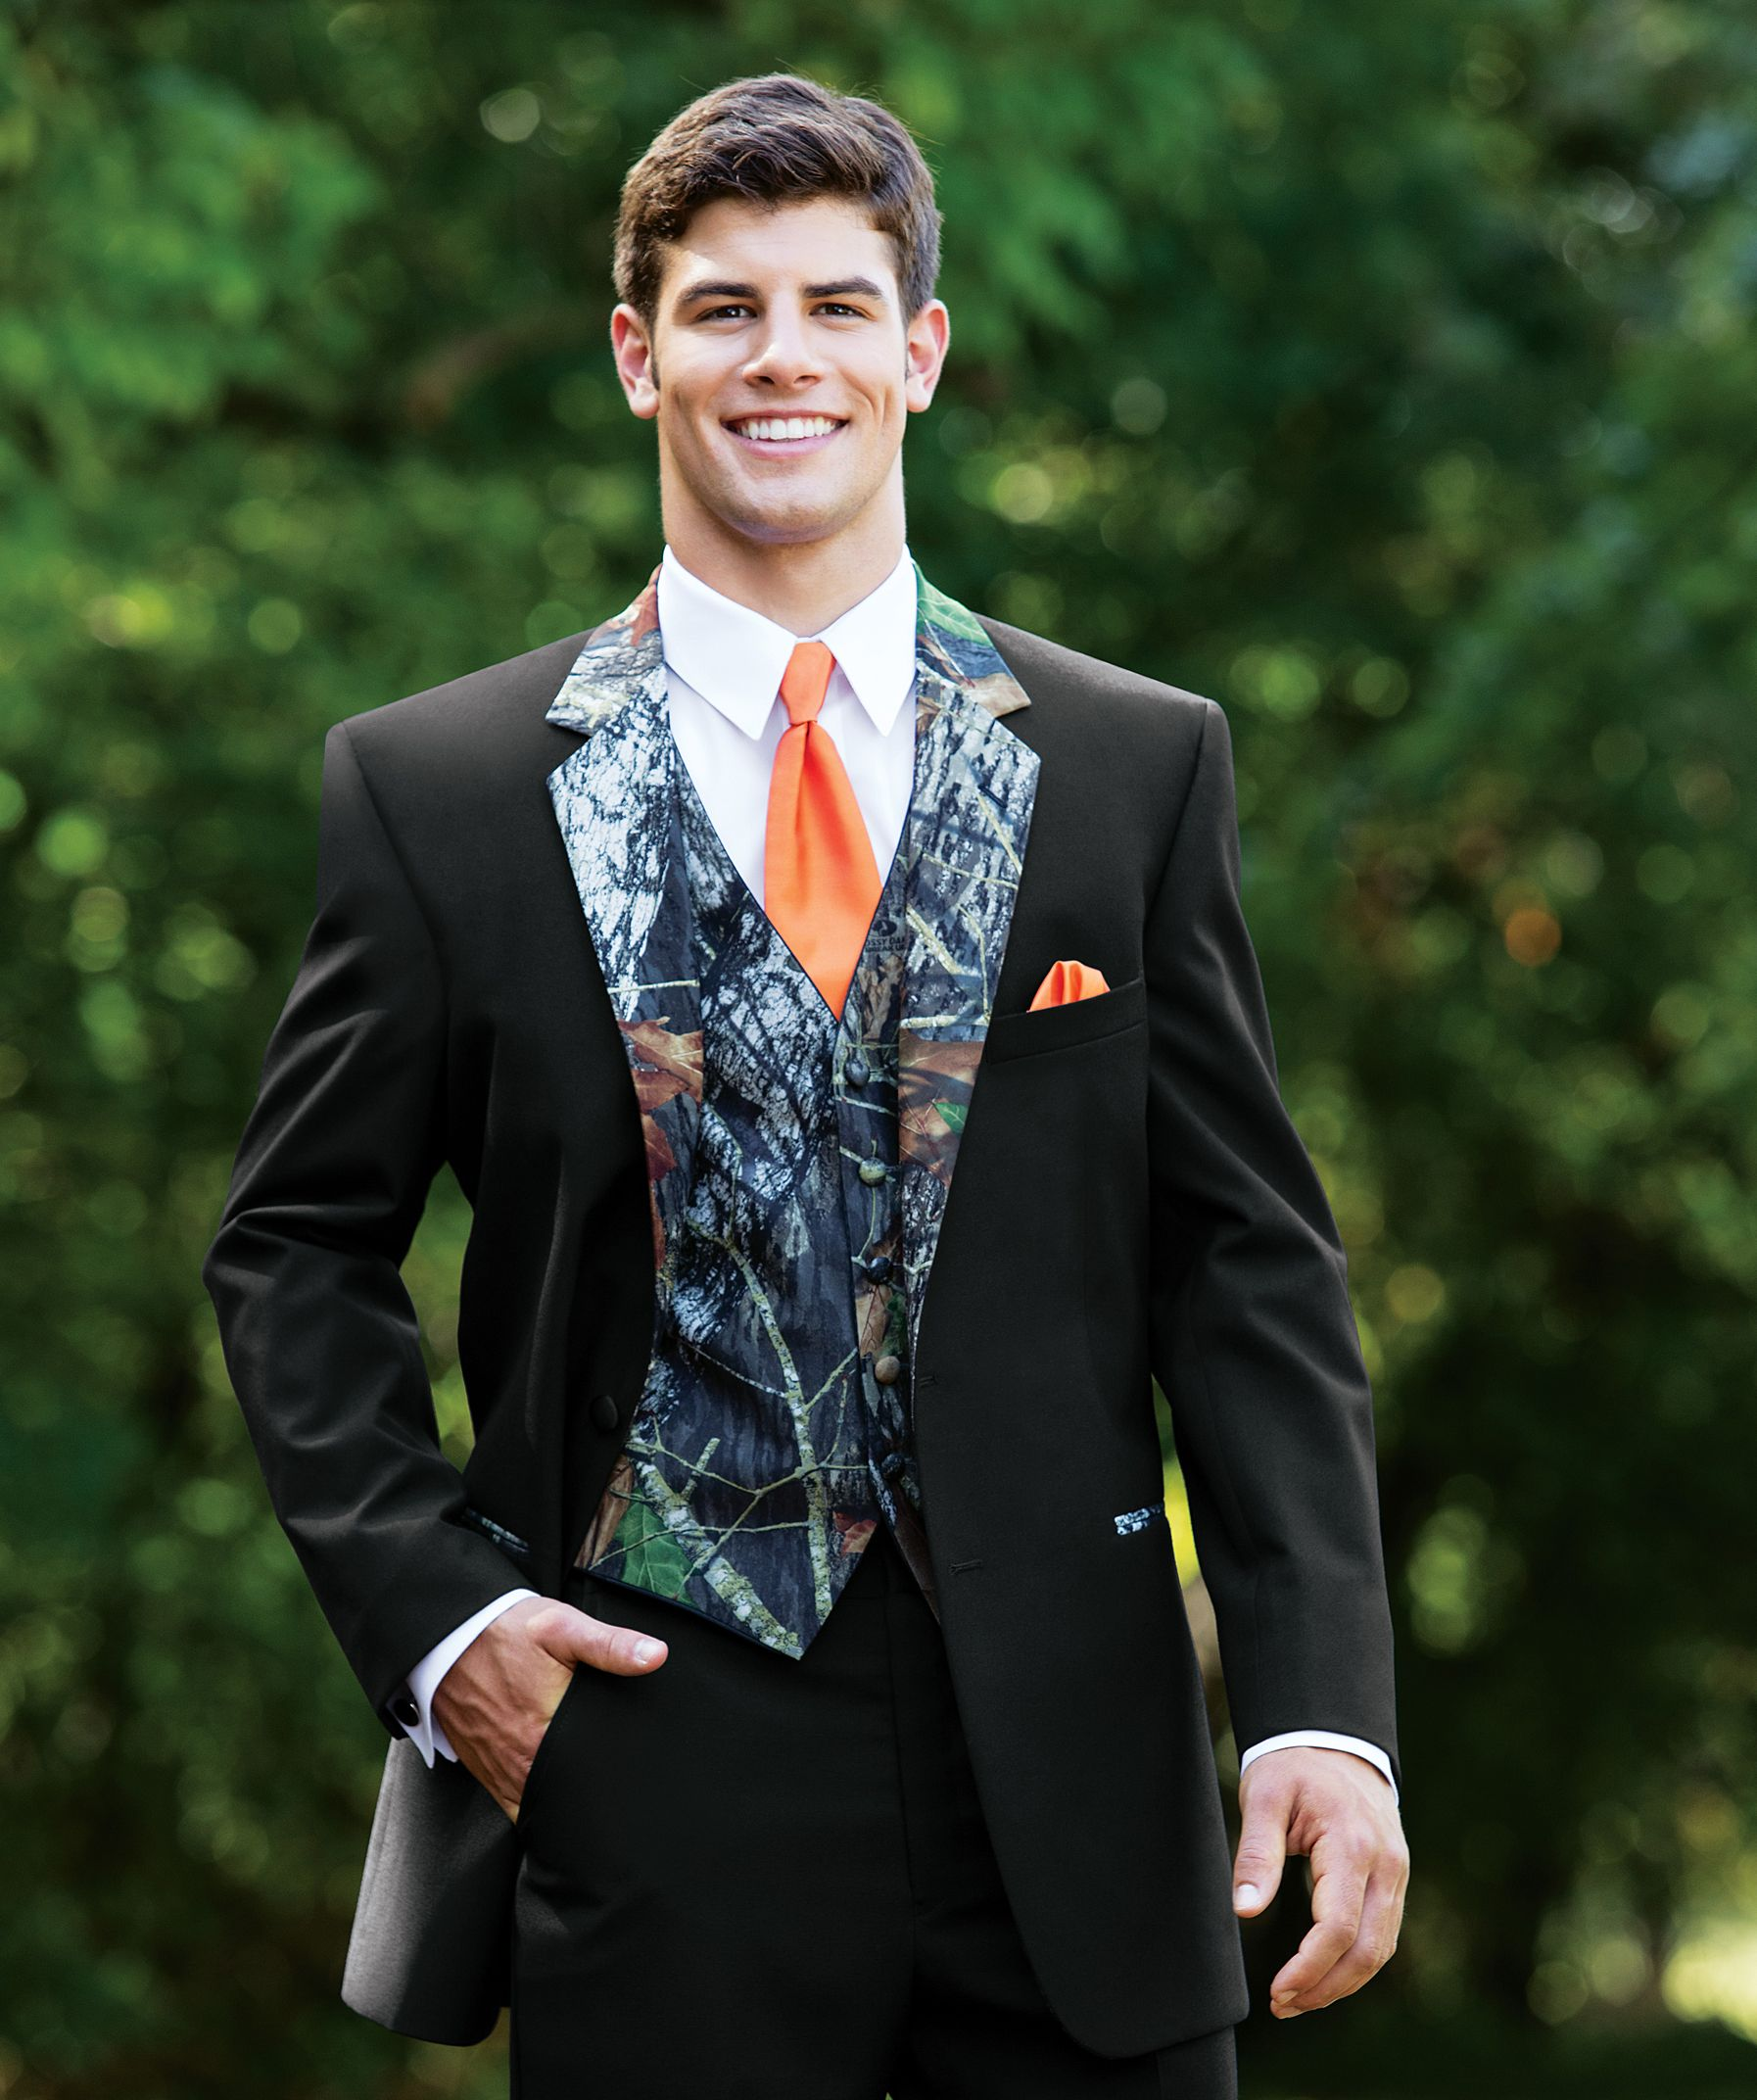 e6d64d3b48795 Camouflage Tuxedo - perfect for prom!